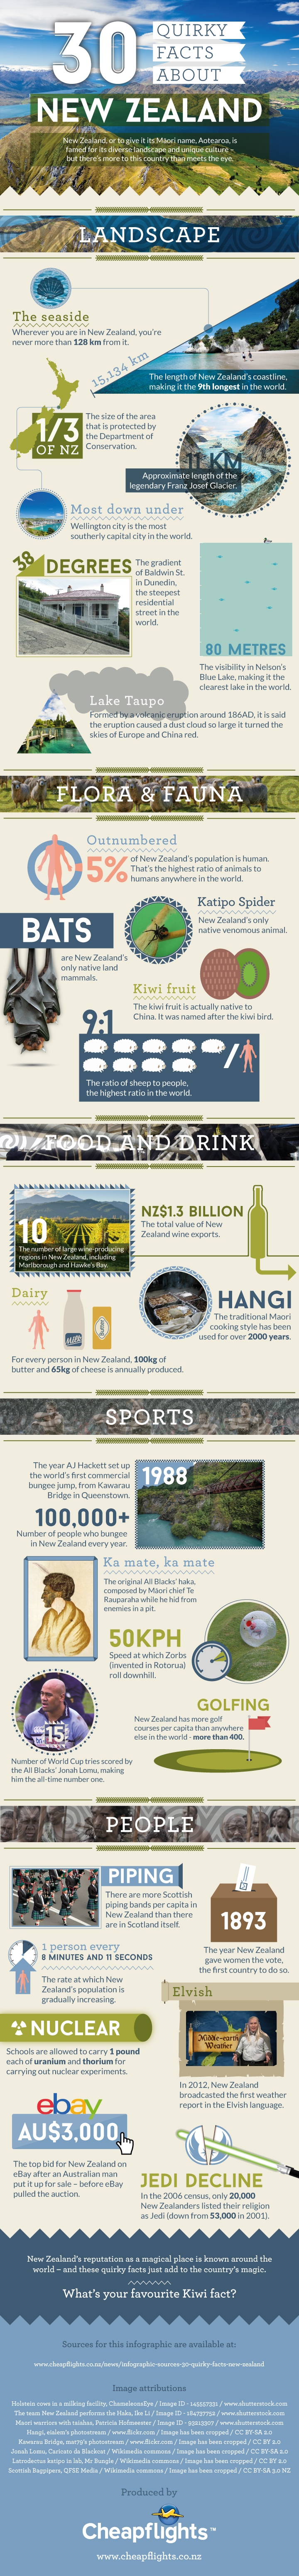 New Zealand Discovered Through Little-Known Quirky Facts - Infographic